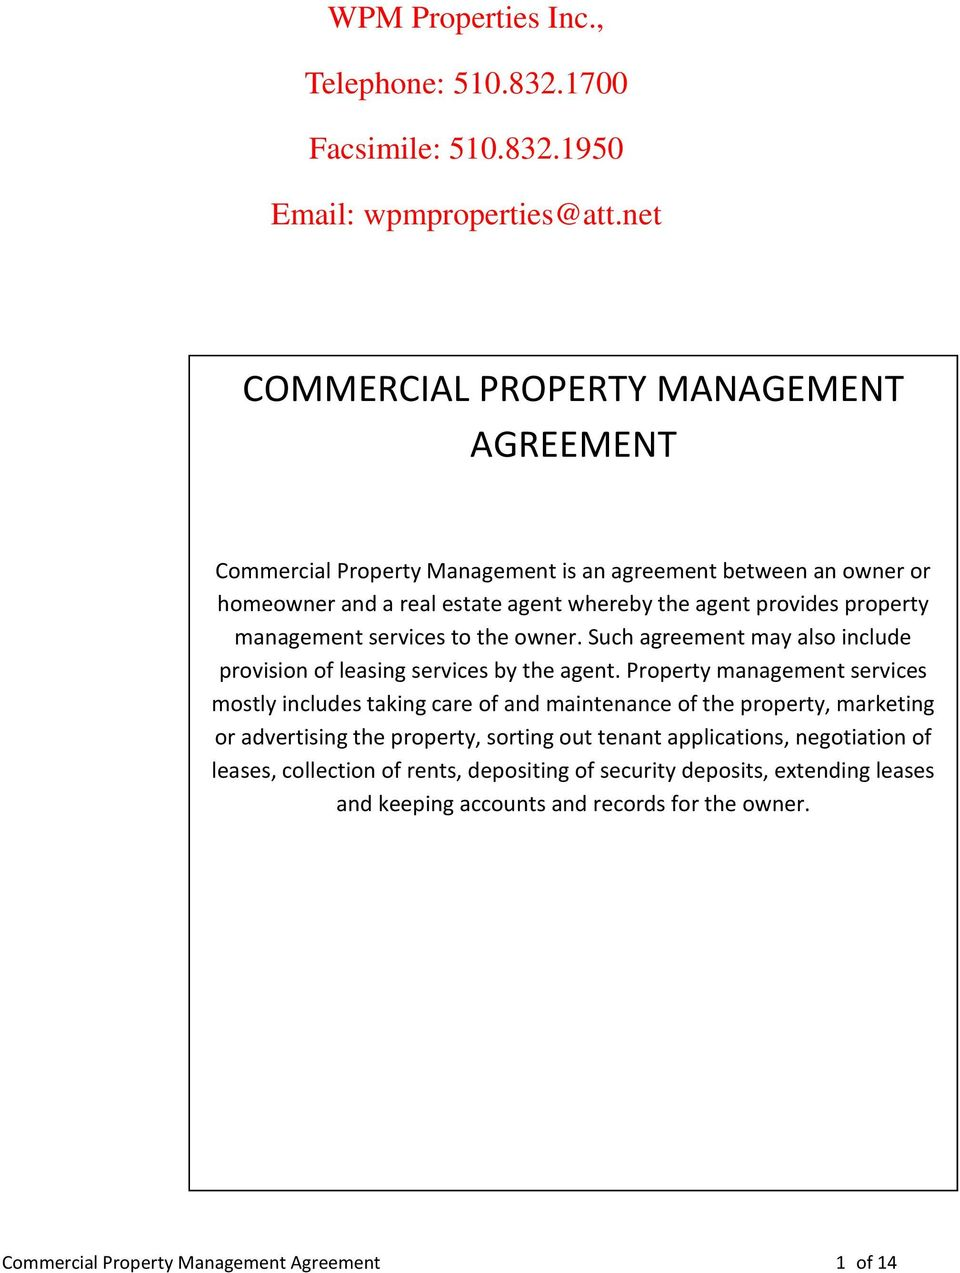 management services to the owner. Such agreement may also include provision of leasing services by the agent.